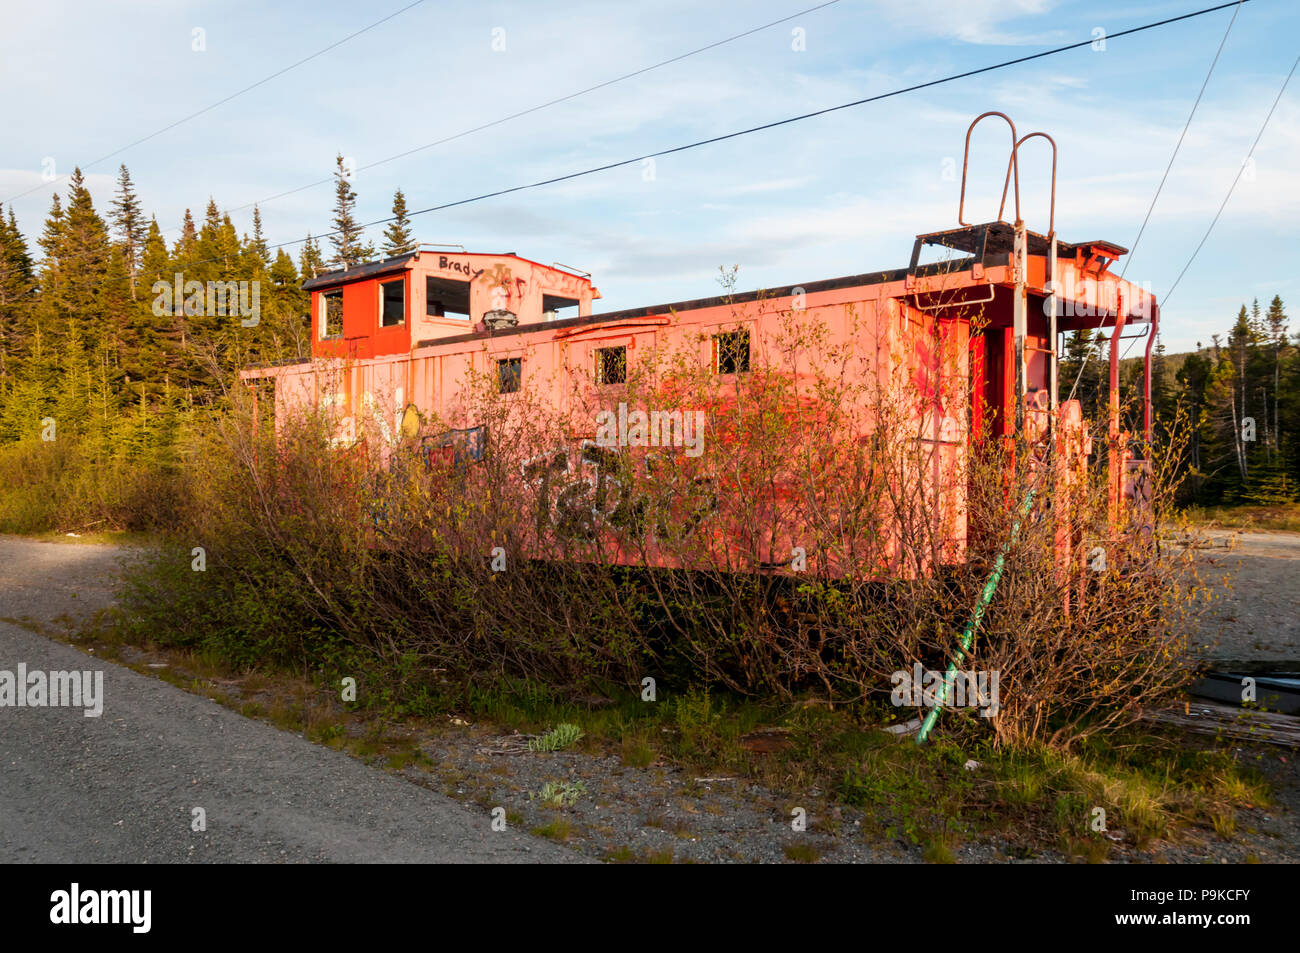 Abandoned locomotive at remains of Trinity Loop amusement park in Newfoundland. DETAILS IN DESCRIPTION. - Stock Image